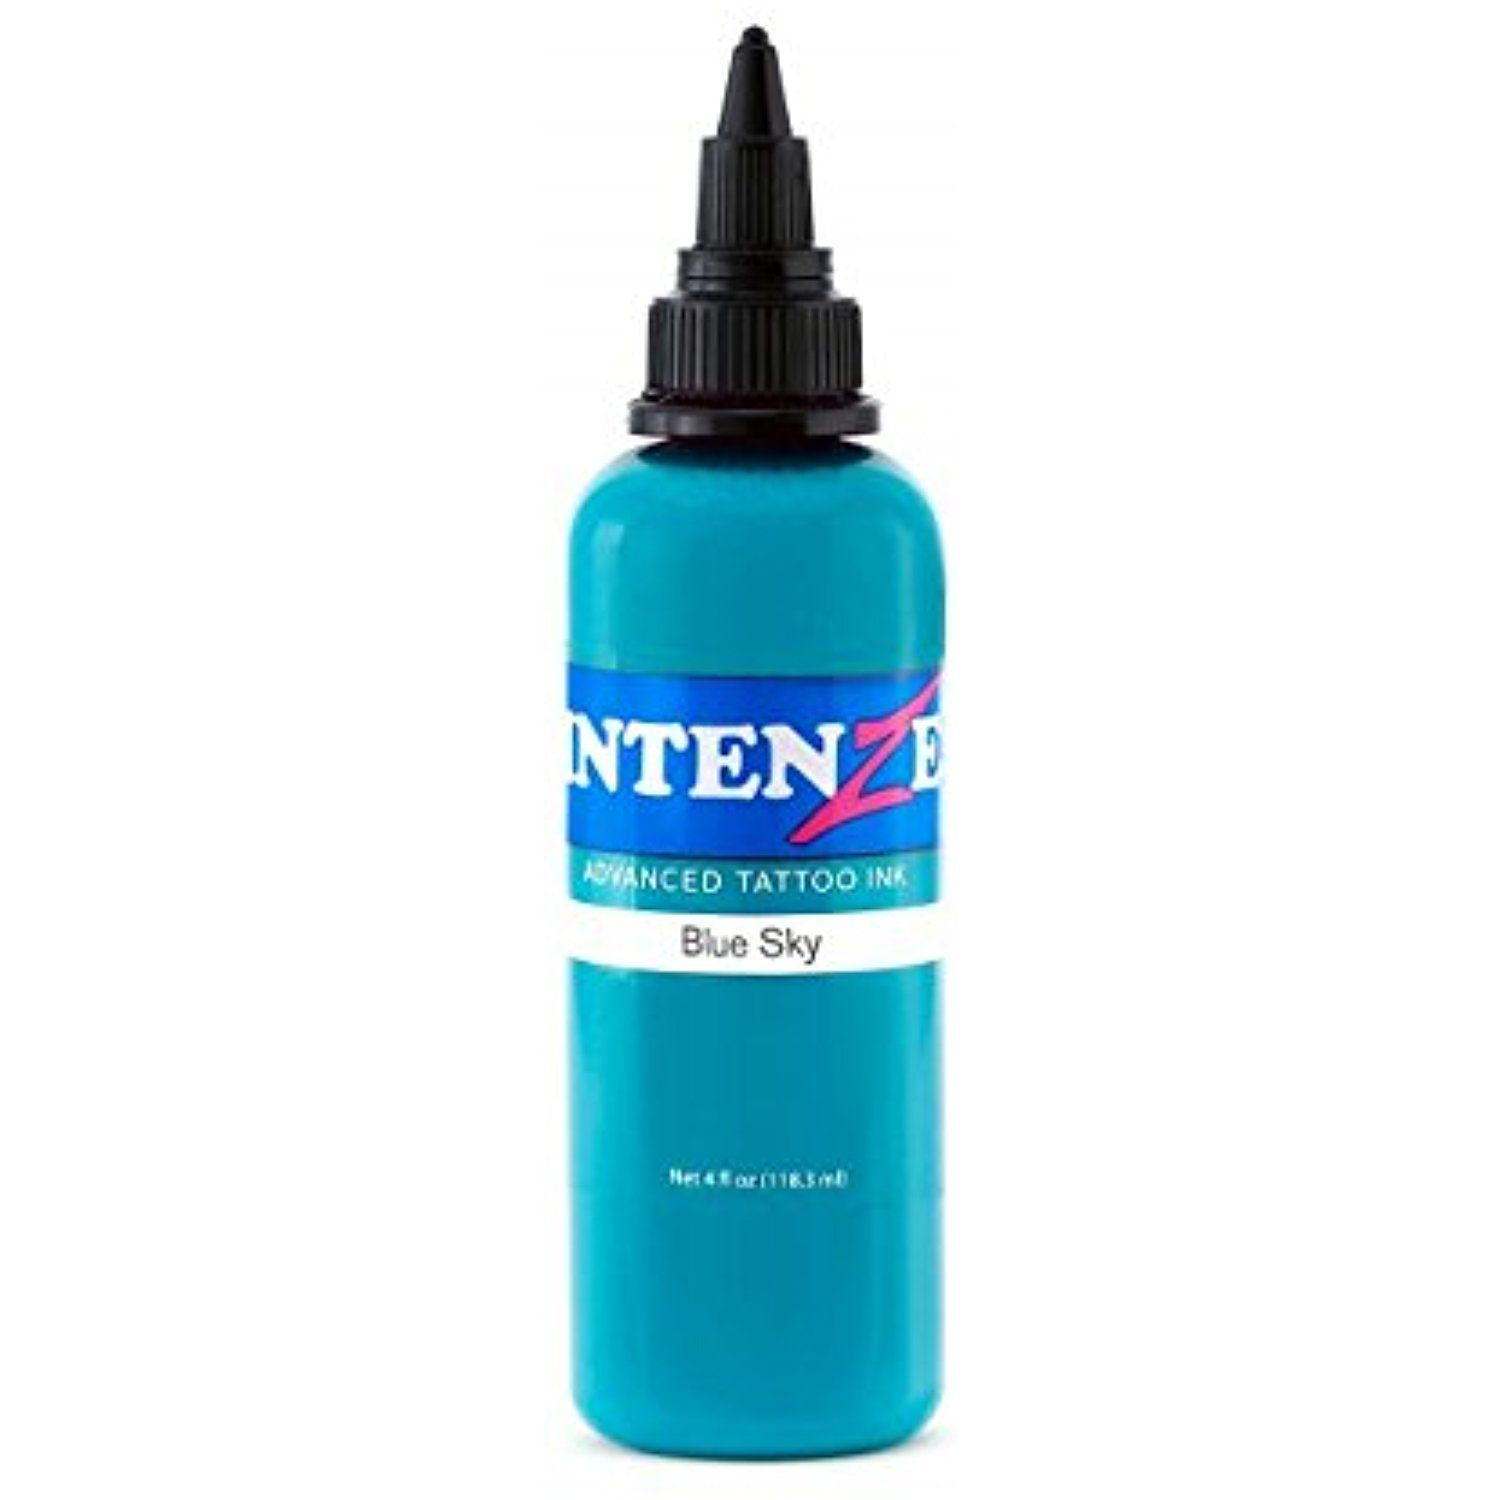 Intenze authentic tattoo ink 1oz blue sky want